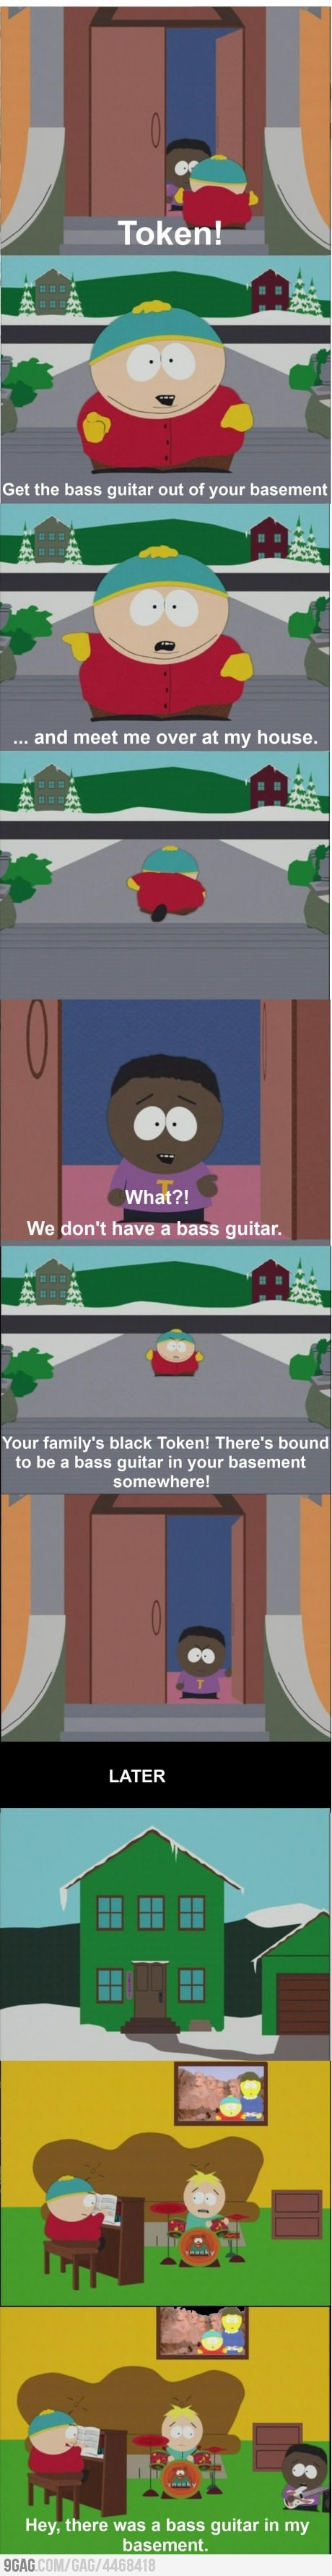 Cartman you're so damn racistTurns out he does have a bass guitar